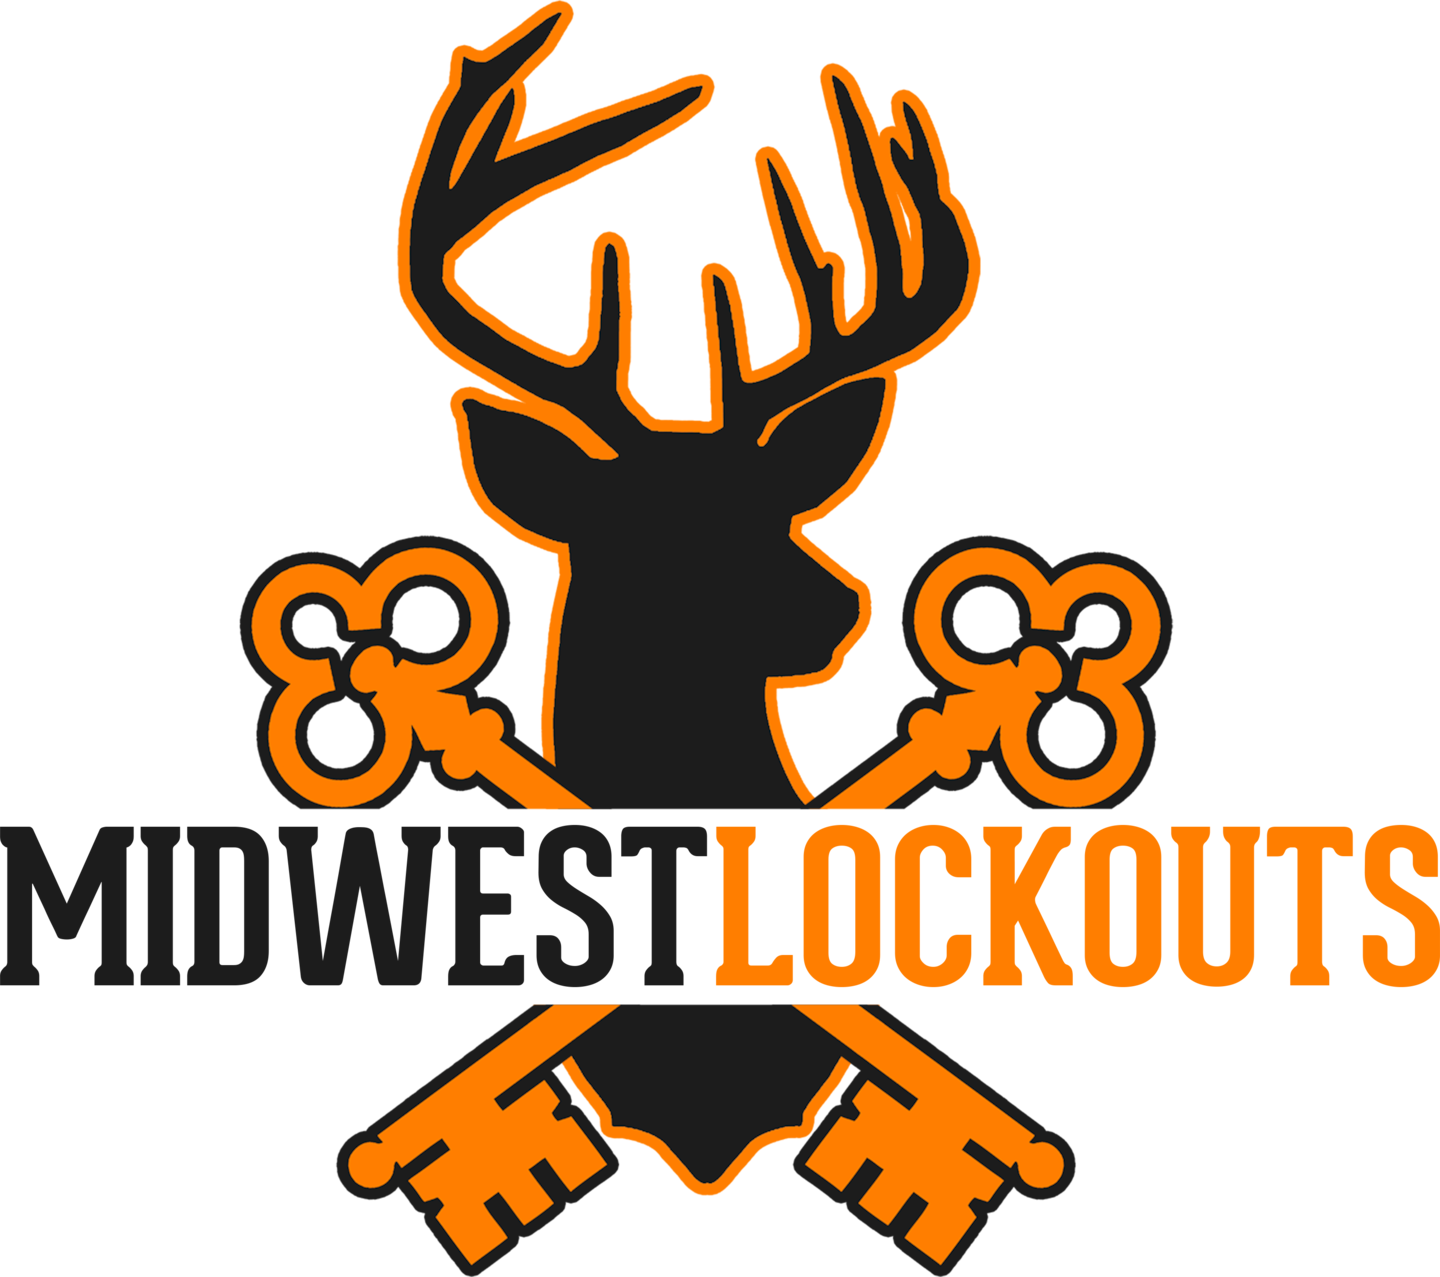 Midwest Lockouts